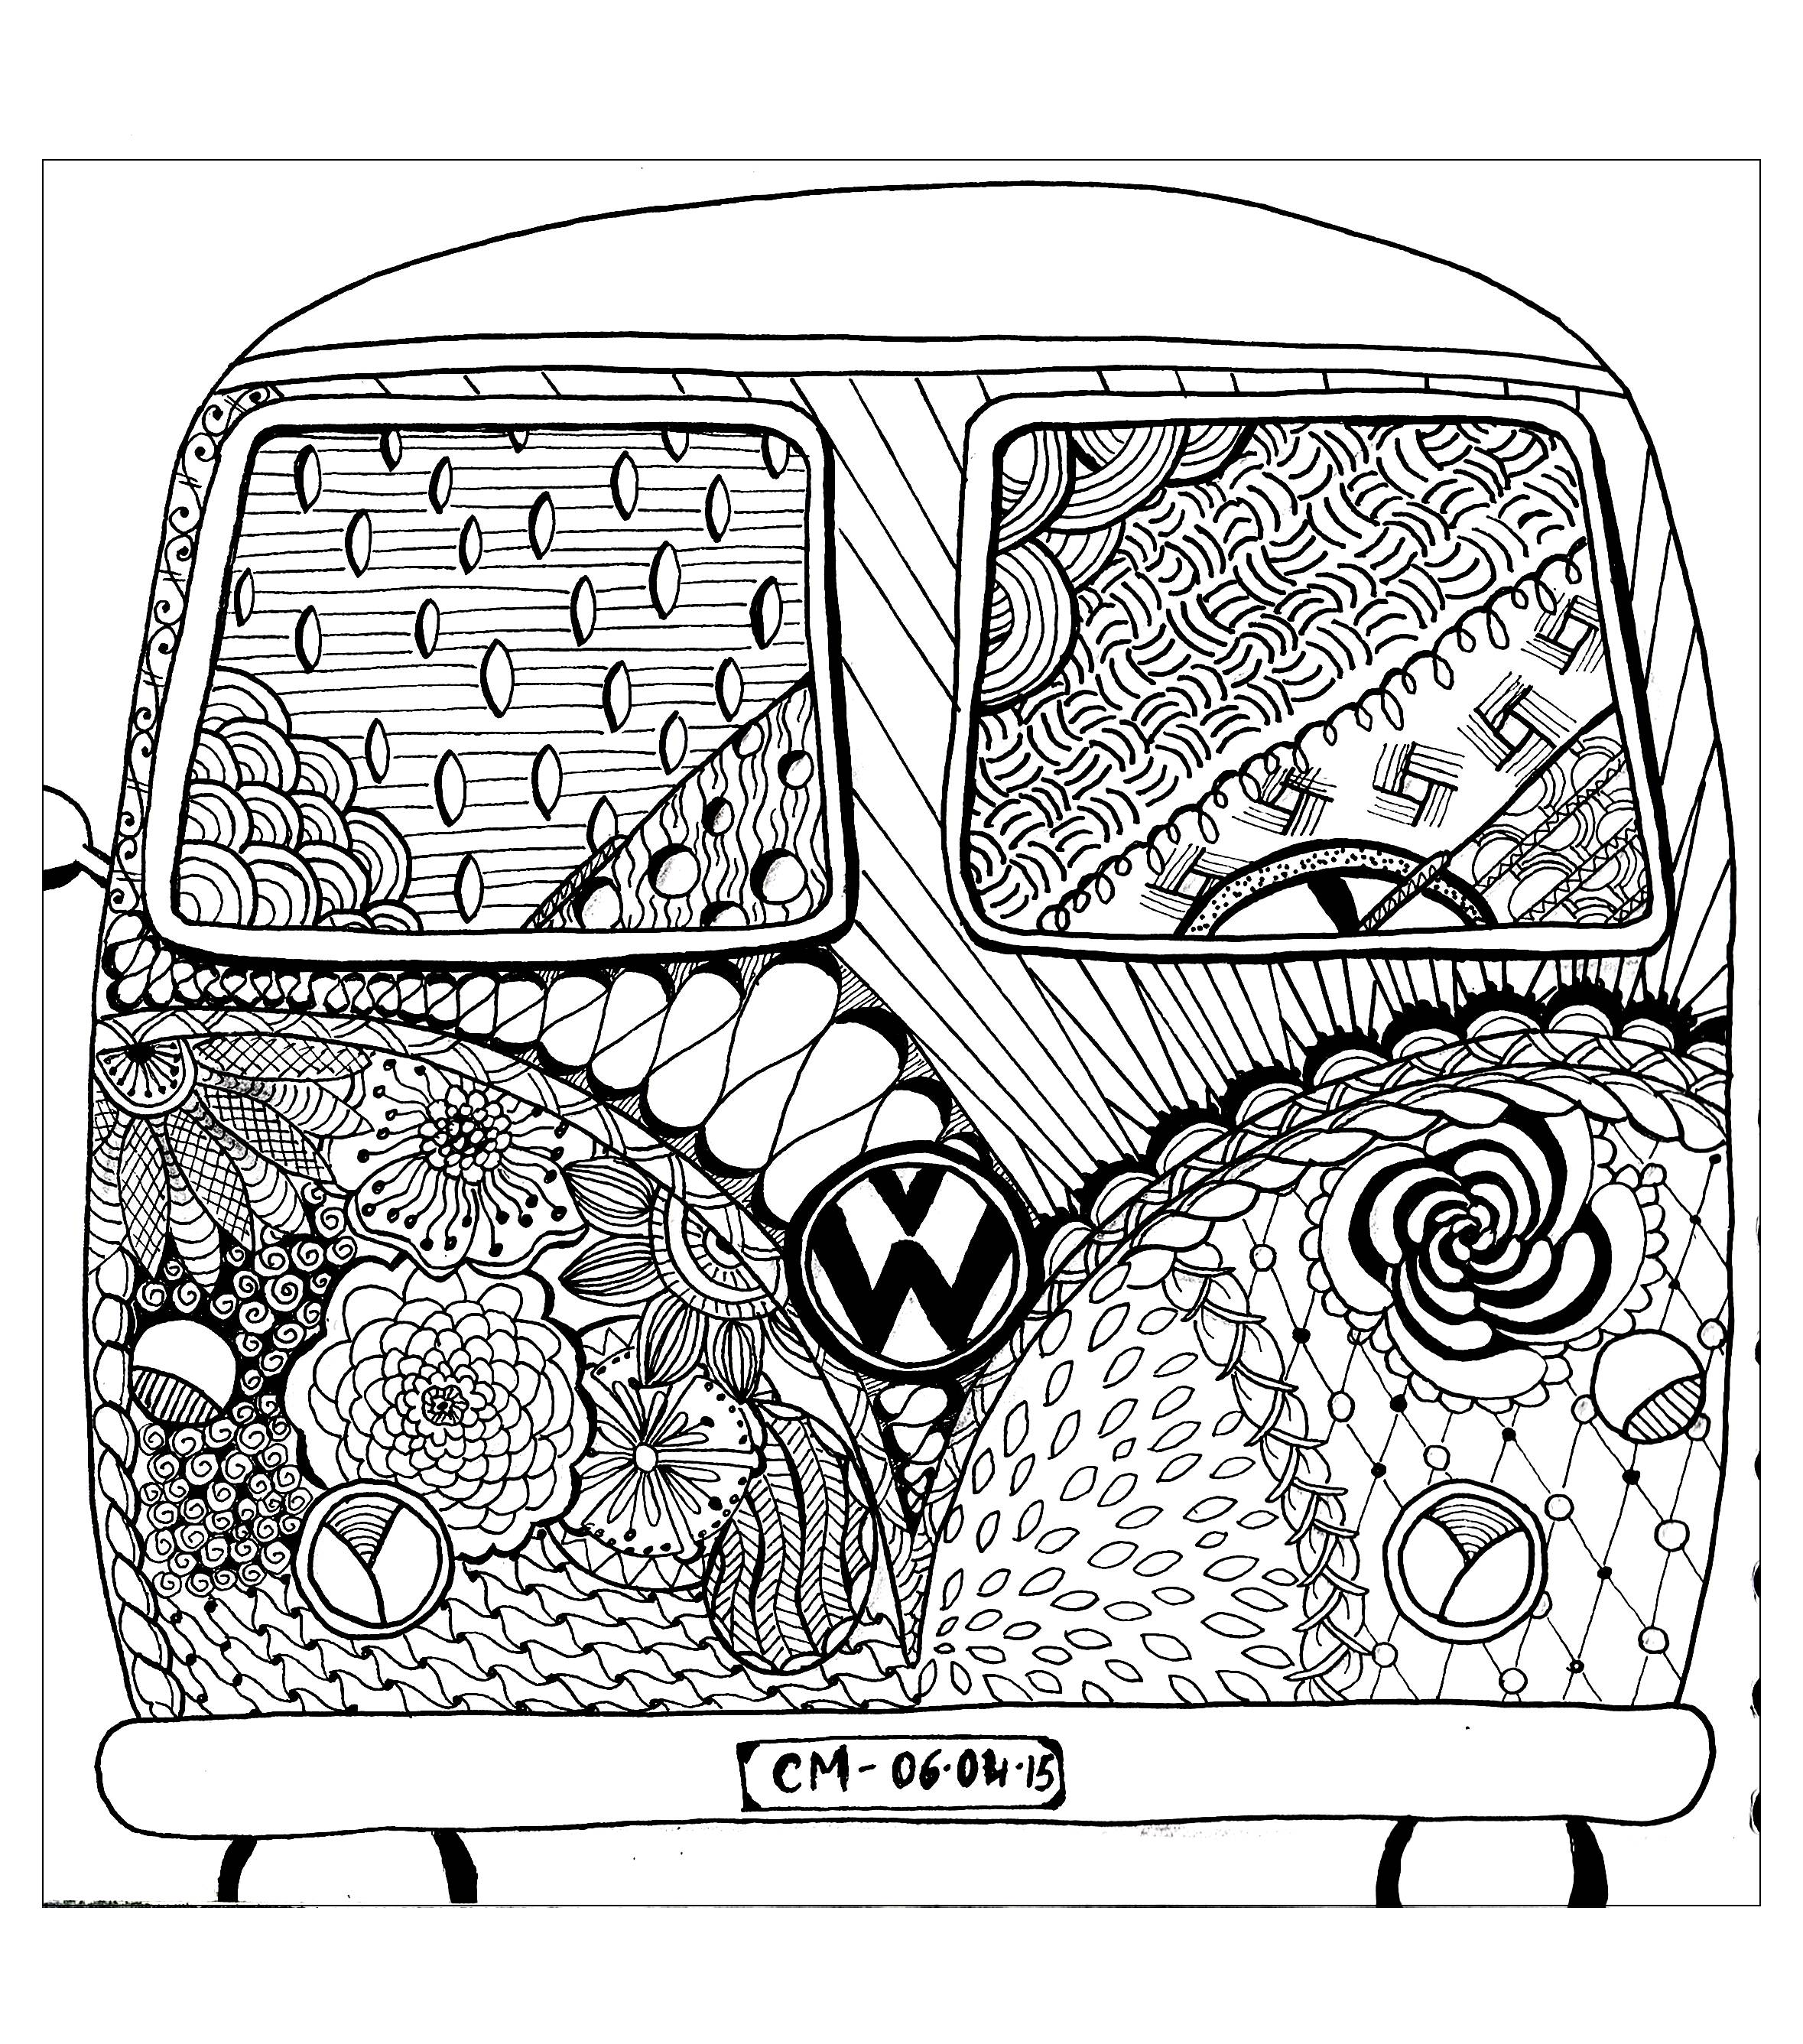 hippie camper exclusive coloring page see the original work image with